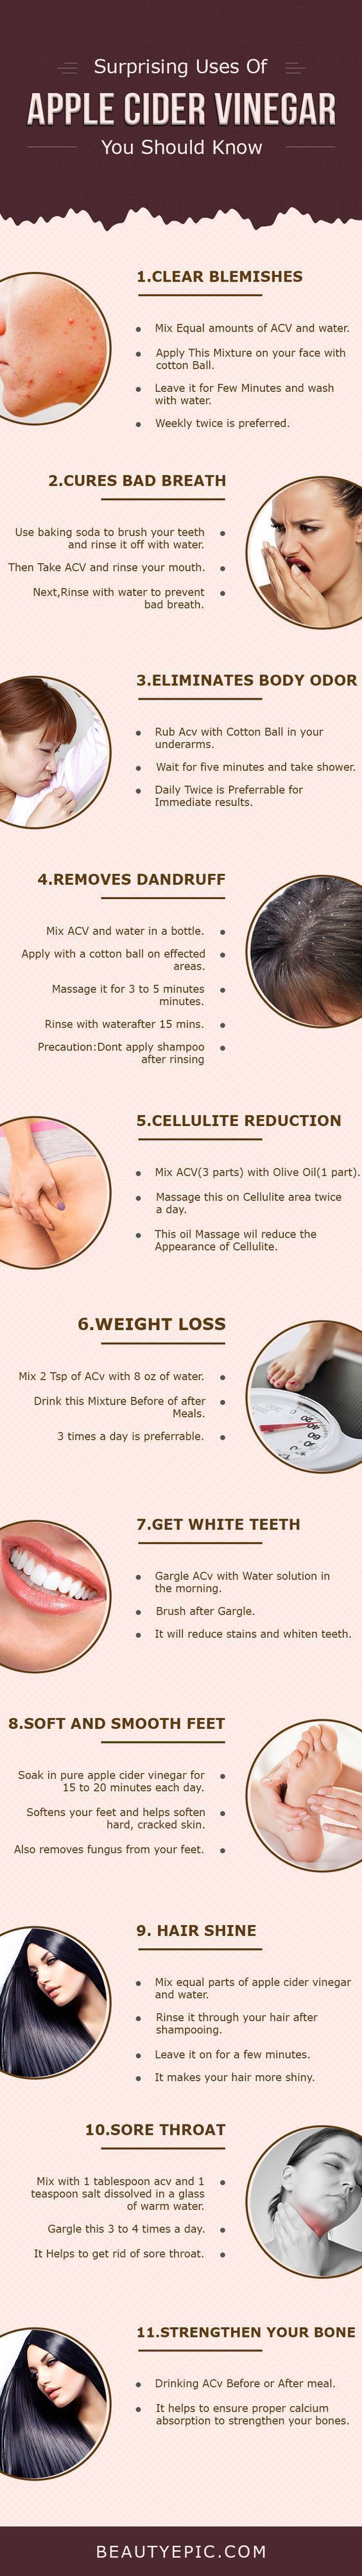 Surprising Uses and Benifits of Apple Cider Vinegar You Should Know Apple cider vinegar is off great use for beauty, health and also at e it every day for various purposes. Here are some uses of apple cider vinegarApple cider vinegar is off great use for beauty, health and also at e it every day for various purposes. Here are some uses of apple cider vinegar Uses and Benifits of Apple Cider Vinegar You Should Know Apple cider vinegar is off great use for beauty, health and also at e it every day for various purposes. Here are some uses of apple cider vinegarApple cider vinegar is off great use for beauty, health and also at e it every day for various purposes. Here are some uses of apple cider vinegarS...